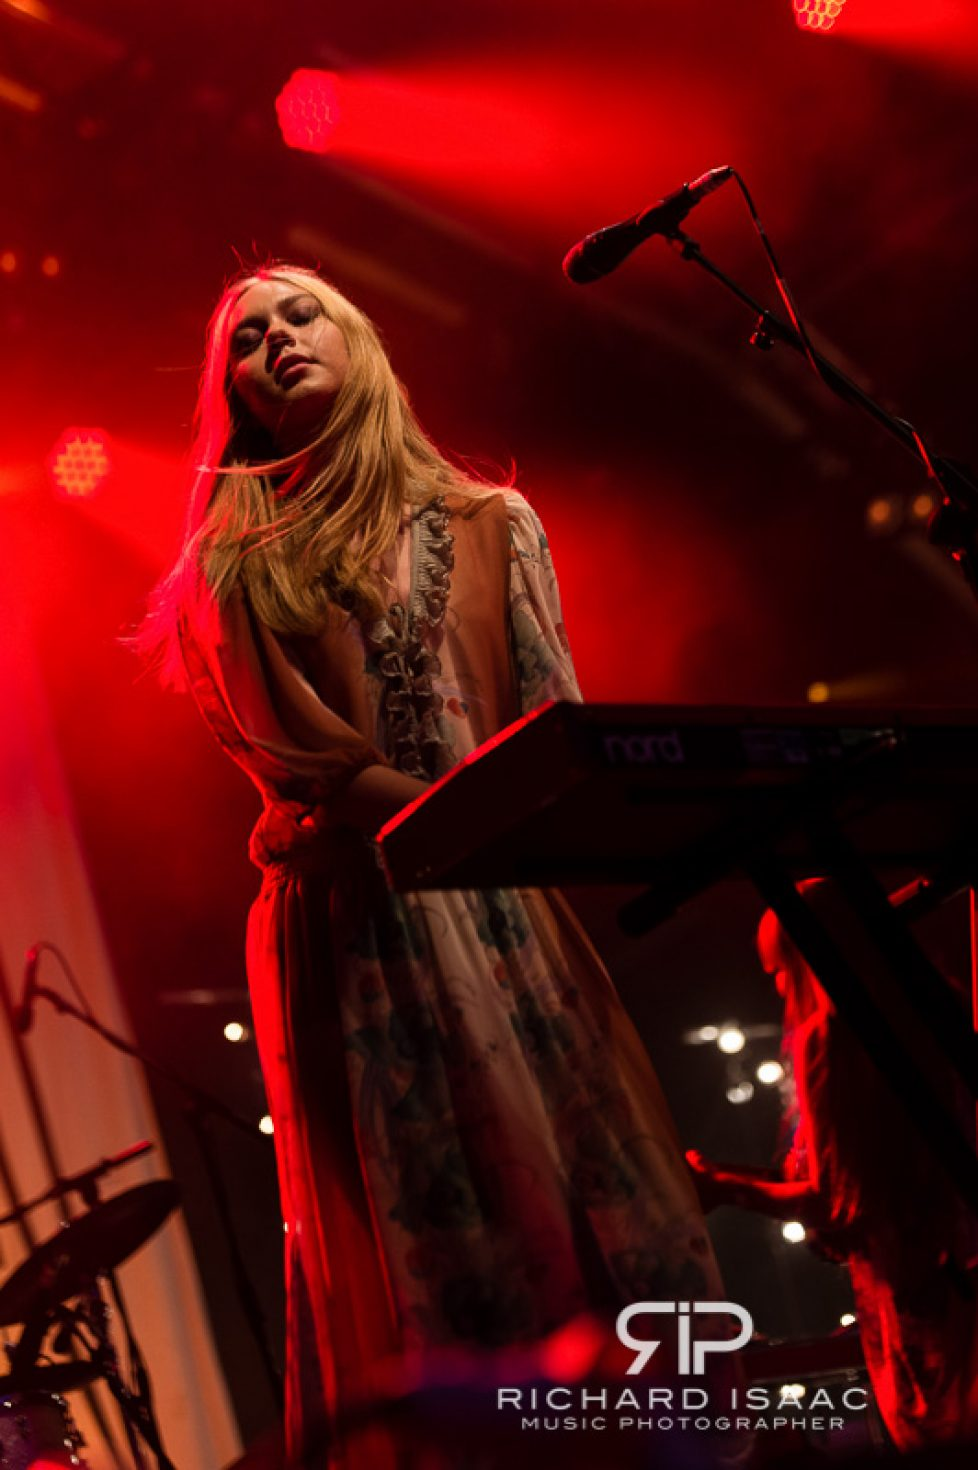 wpid-15-07-2013_First_Aid_Kit_gig_Somerset_House_009.jpg